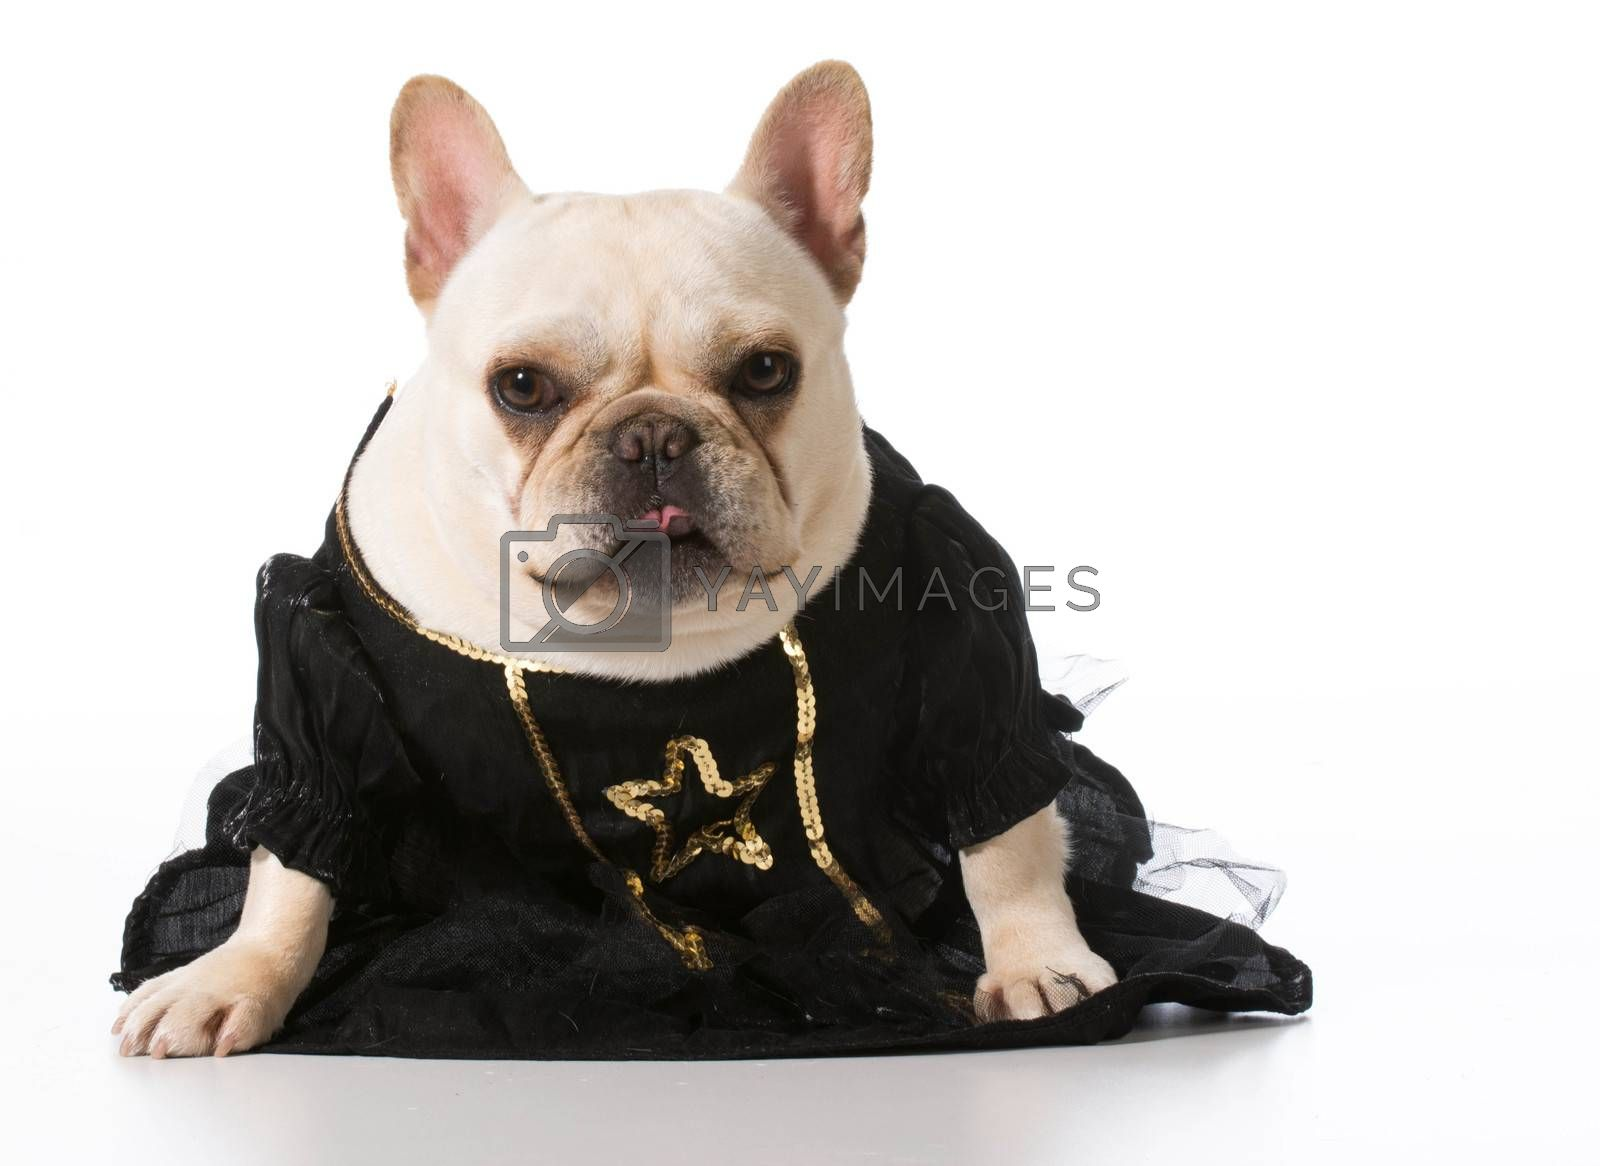 Royalty free image of female french bulldog by willeecole123